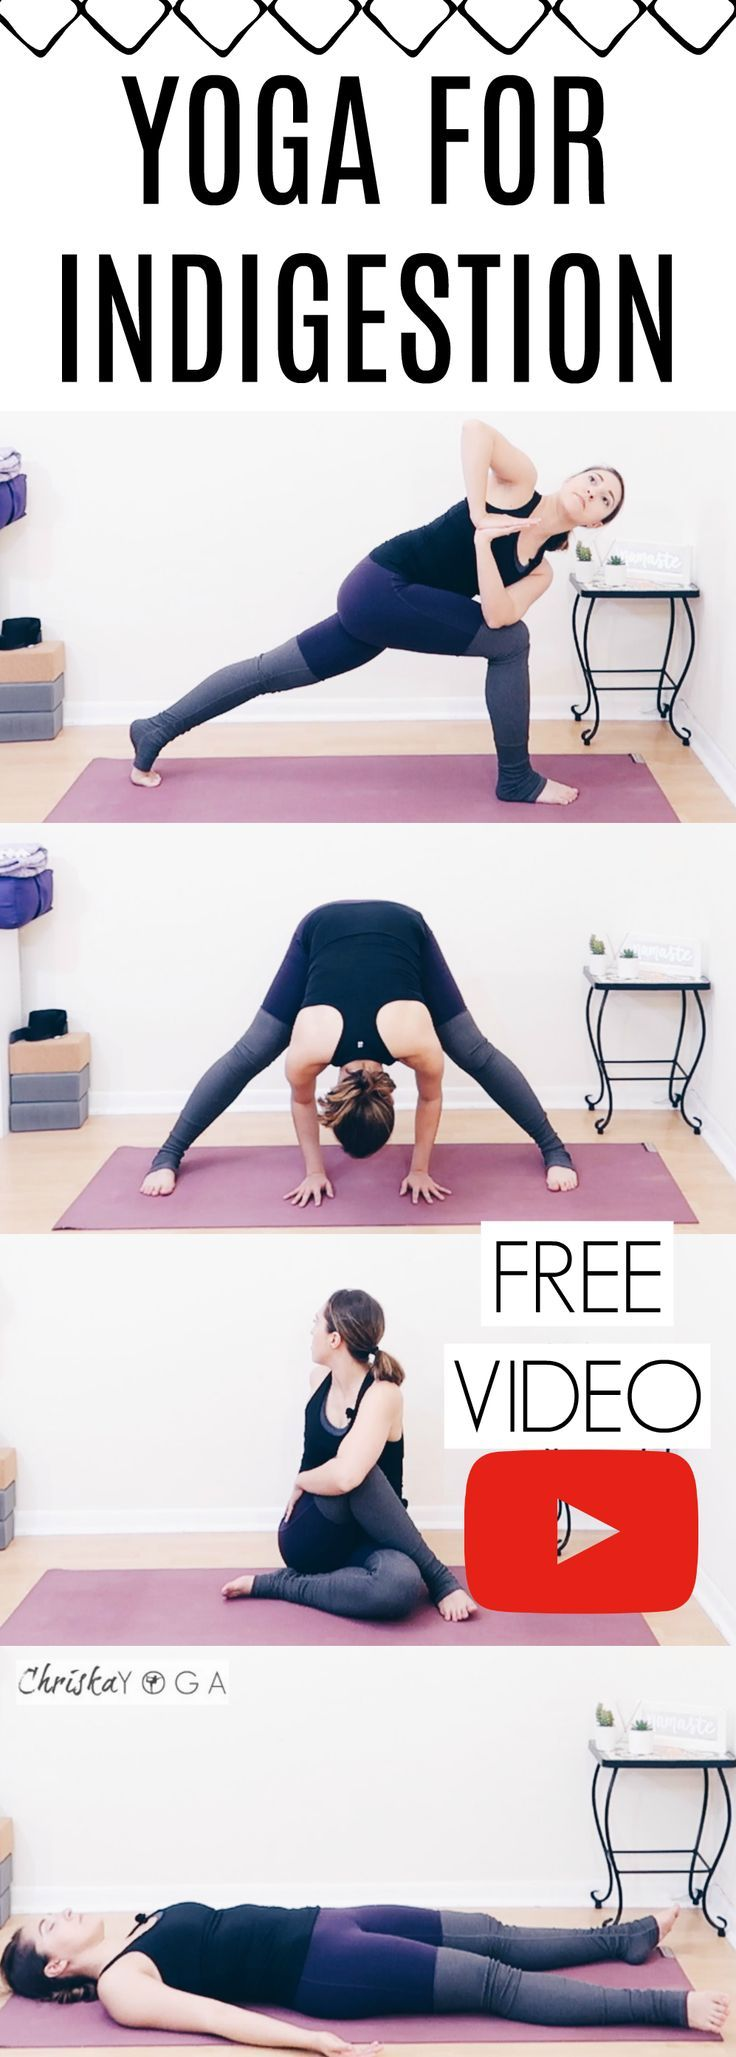 30++ Yoga poses for stomach pain ideas in 2021